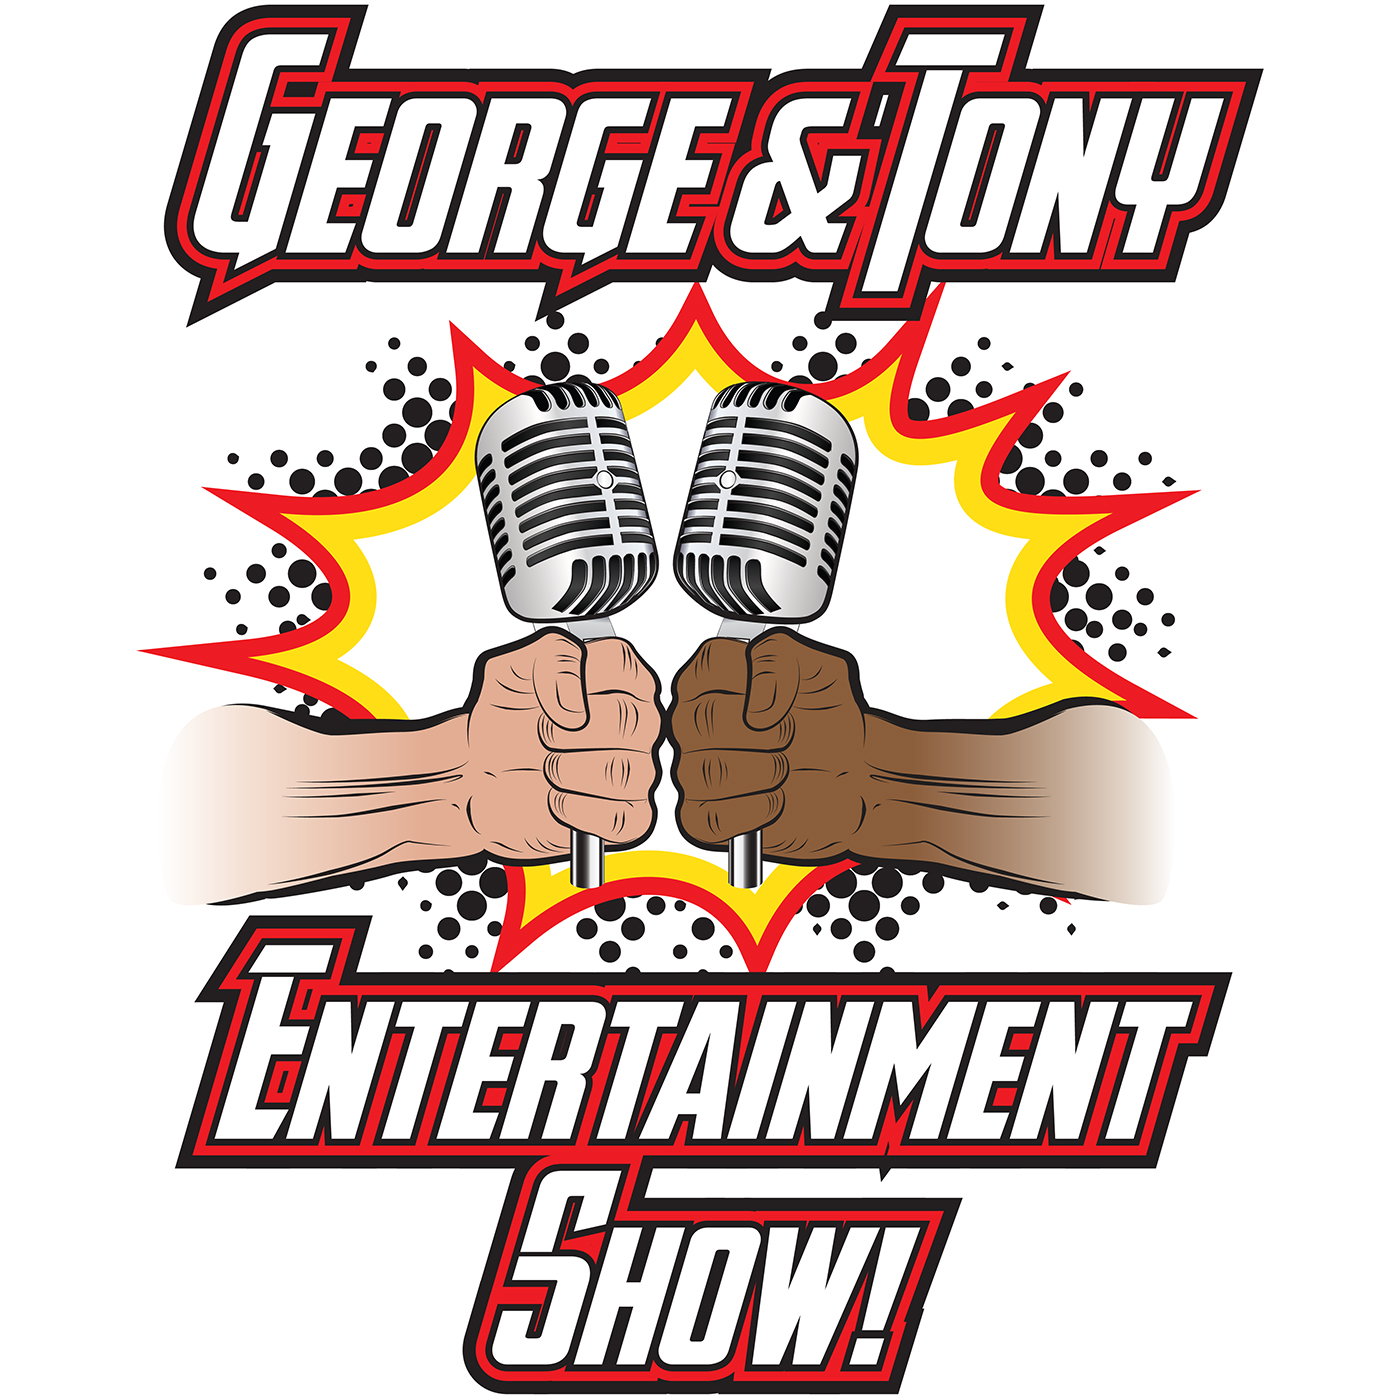 George and Tony Entertainment Show #85